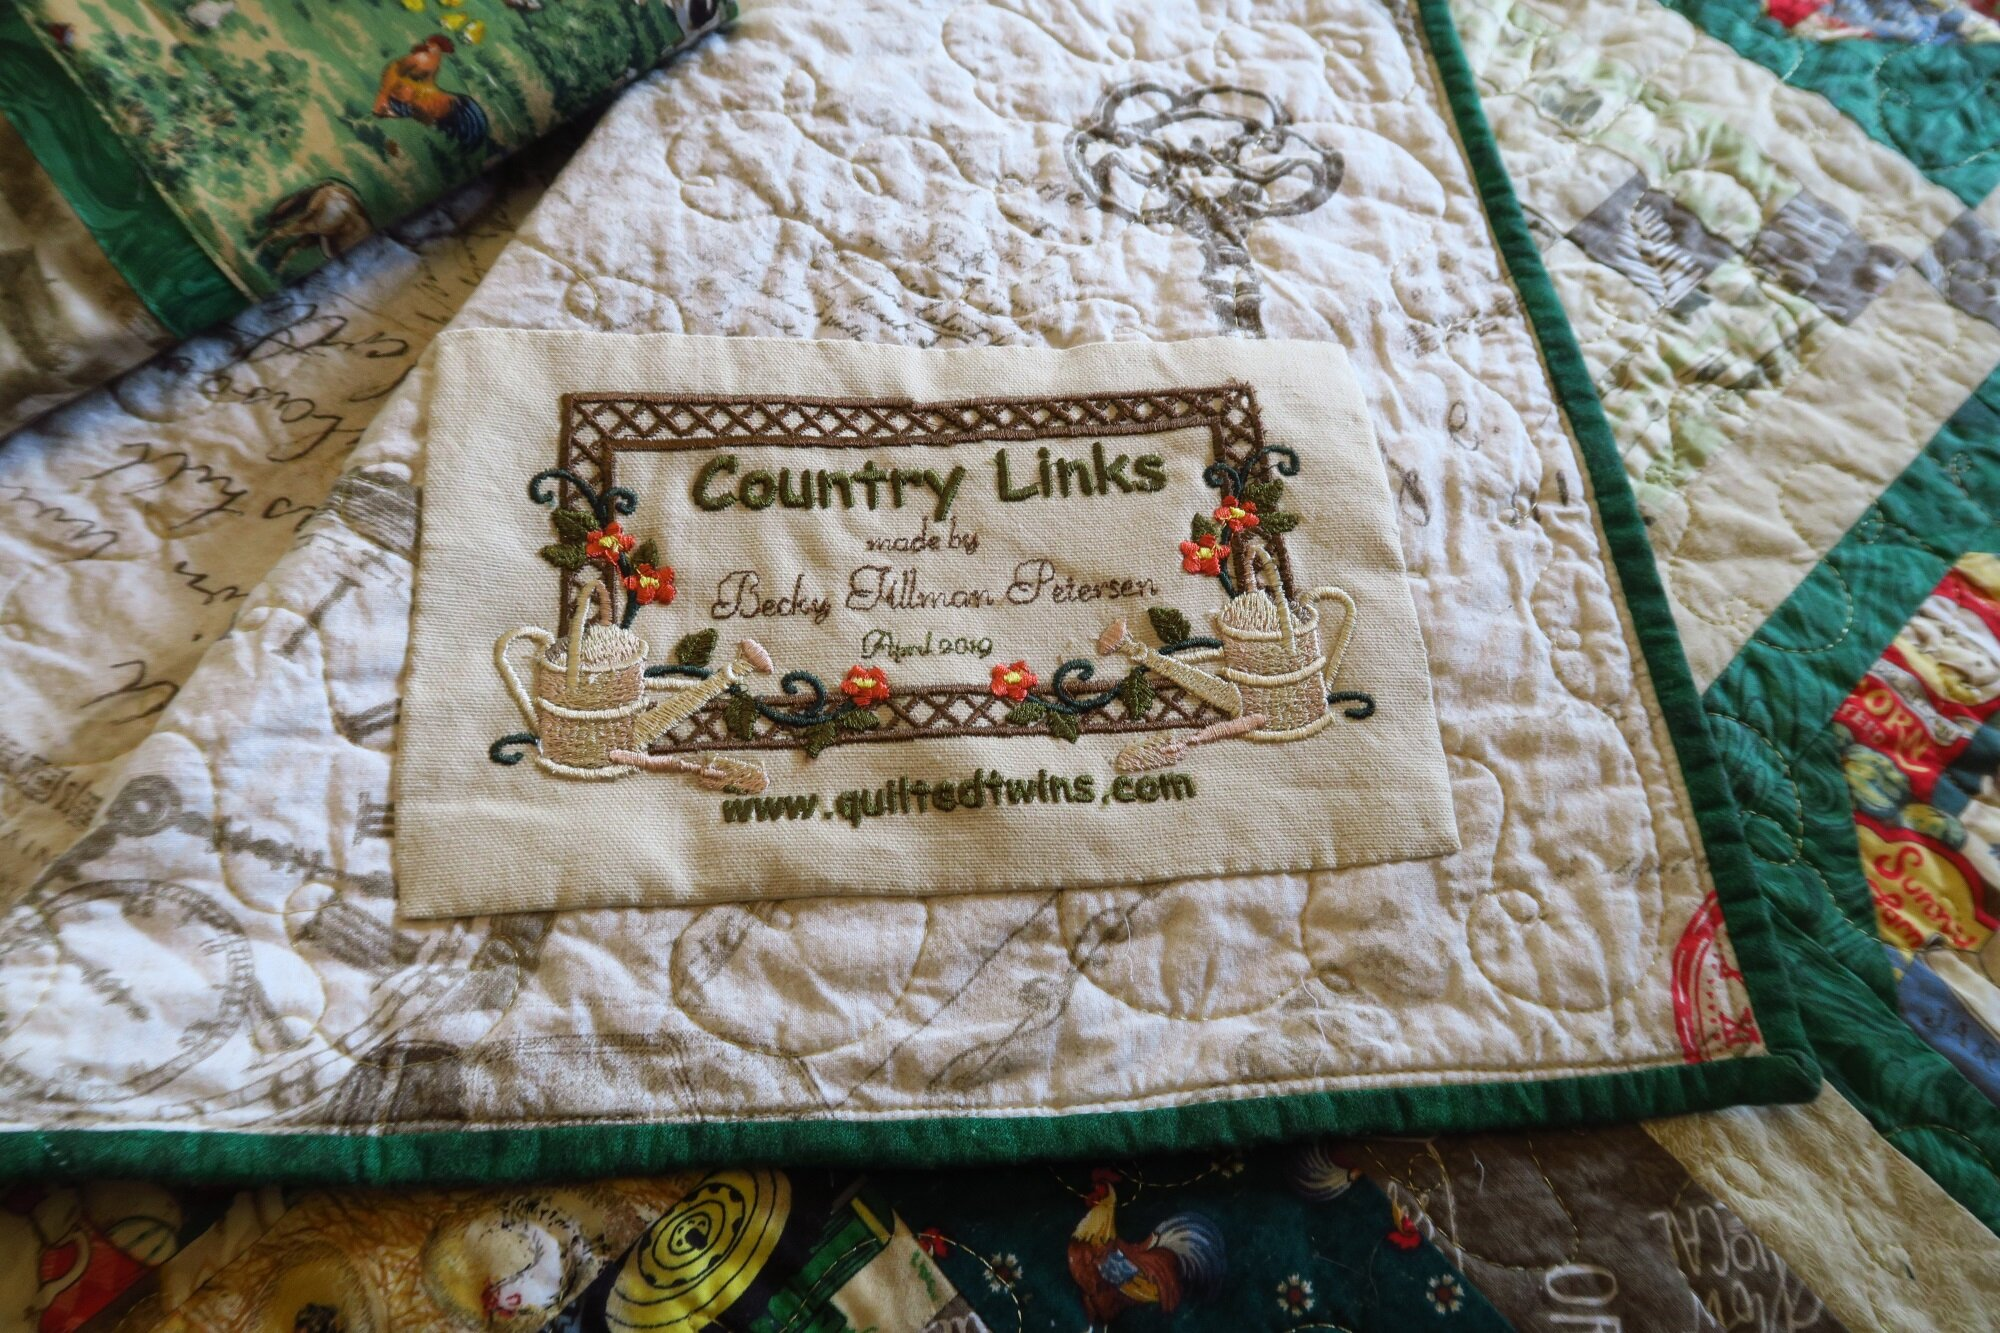 I did put a label on it - I used my embroidery machine to make it after designing it with Embird - a basic embroidery program.